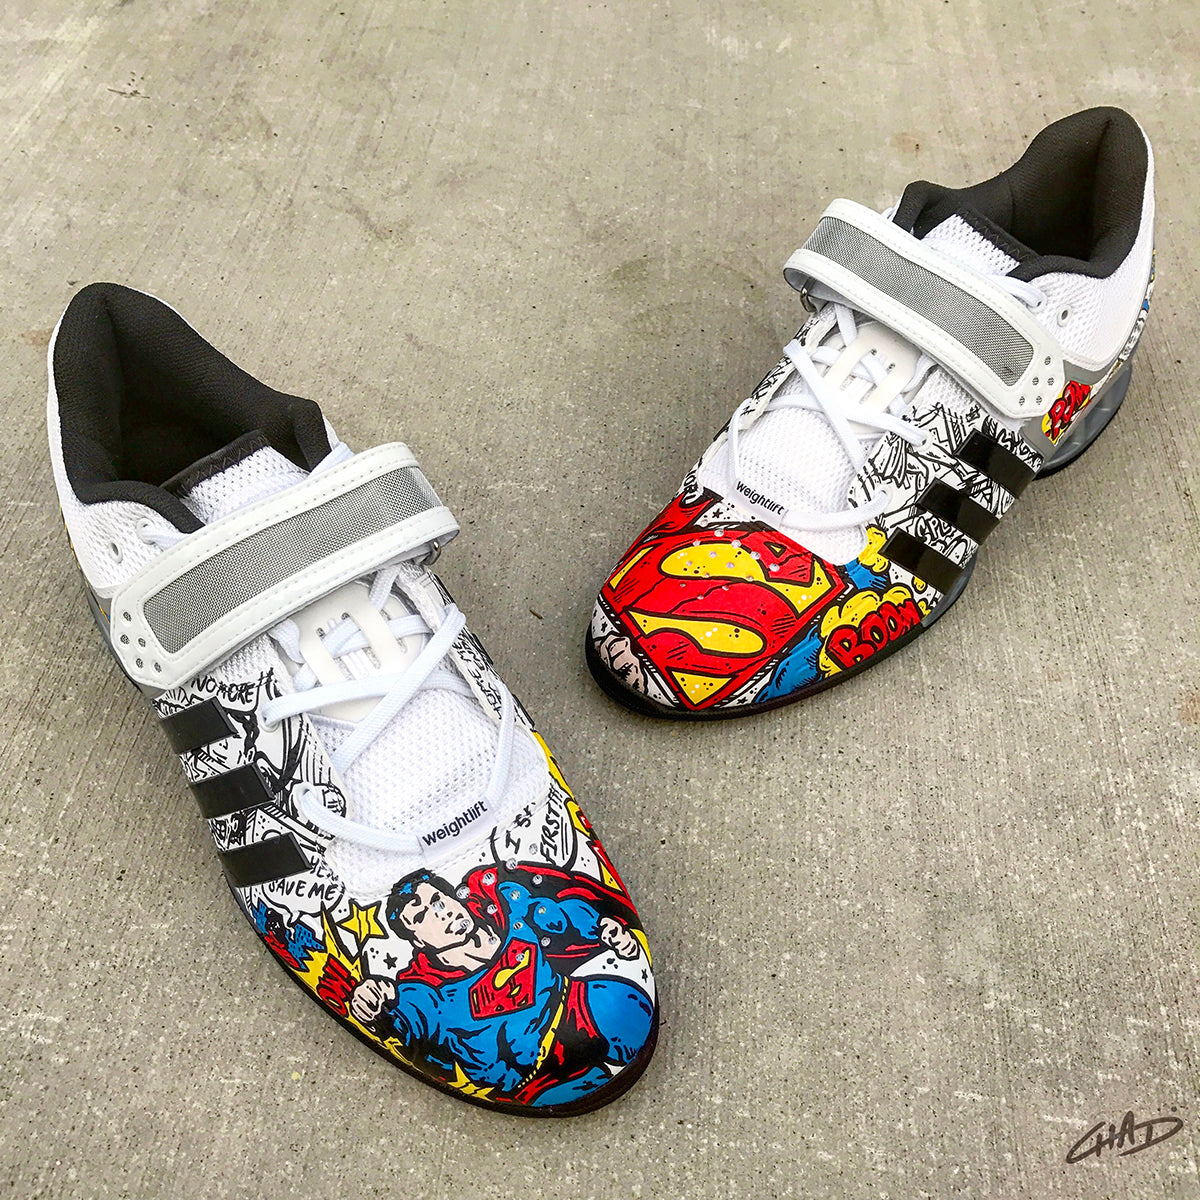 71b2db1ee444 Superman Custom Hand Painted Adidas Adipowers - Olympic Weightlifting  Crossfit shoes